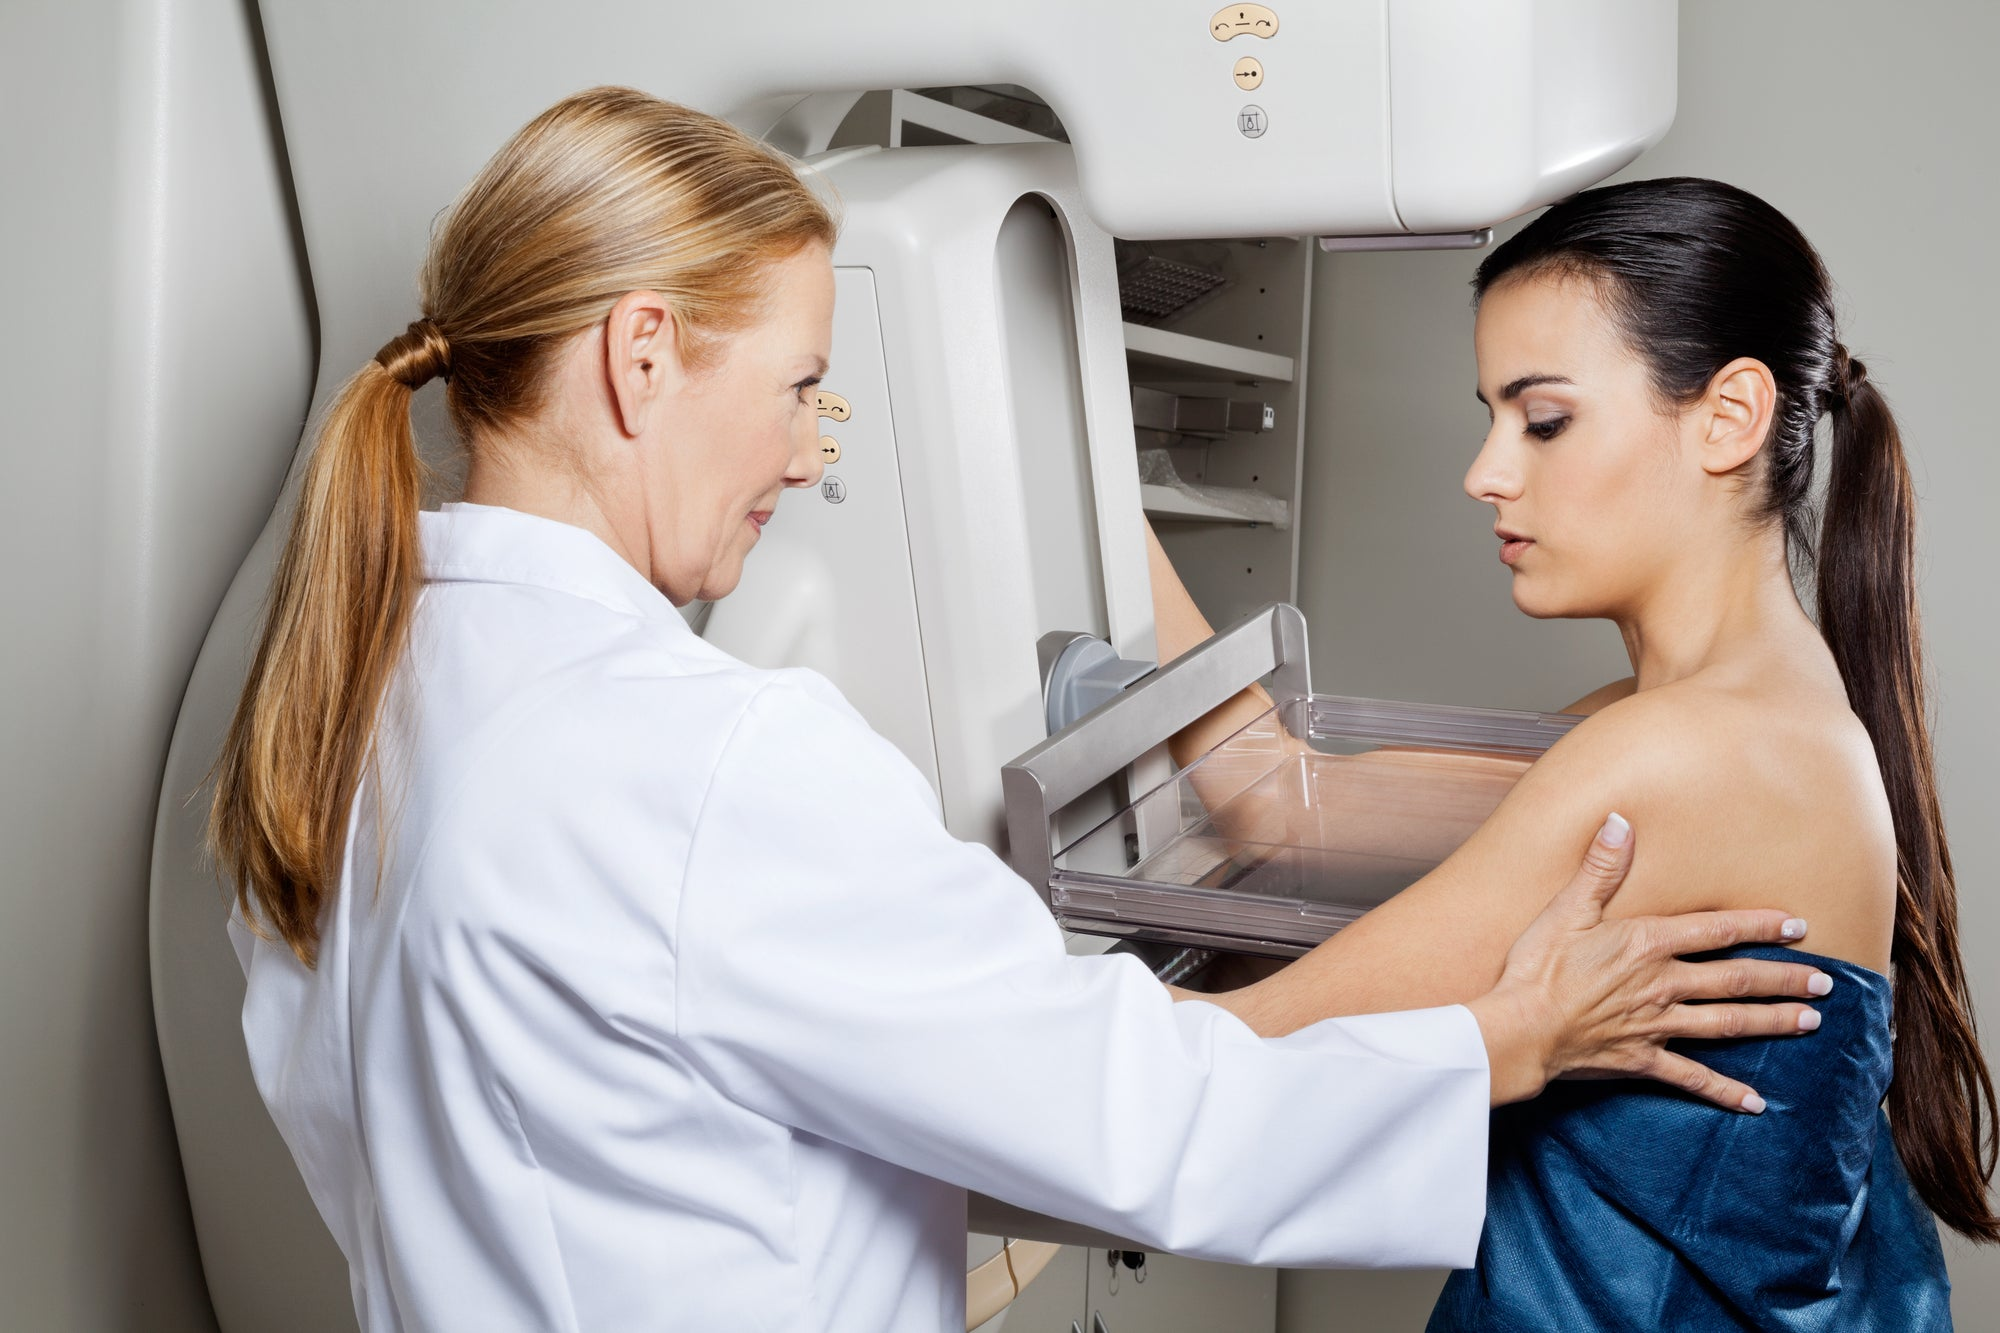 The FDA is finally updating its decades-old mammogram standards